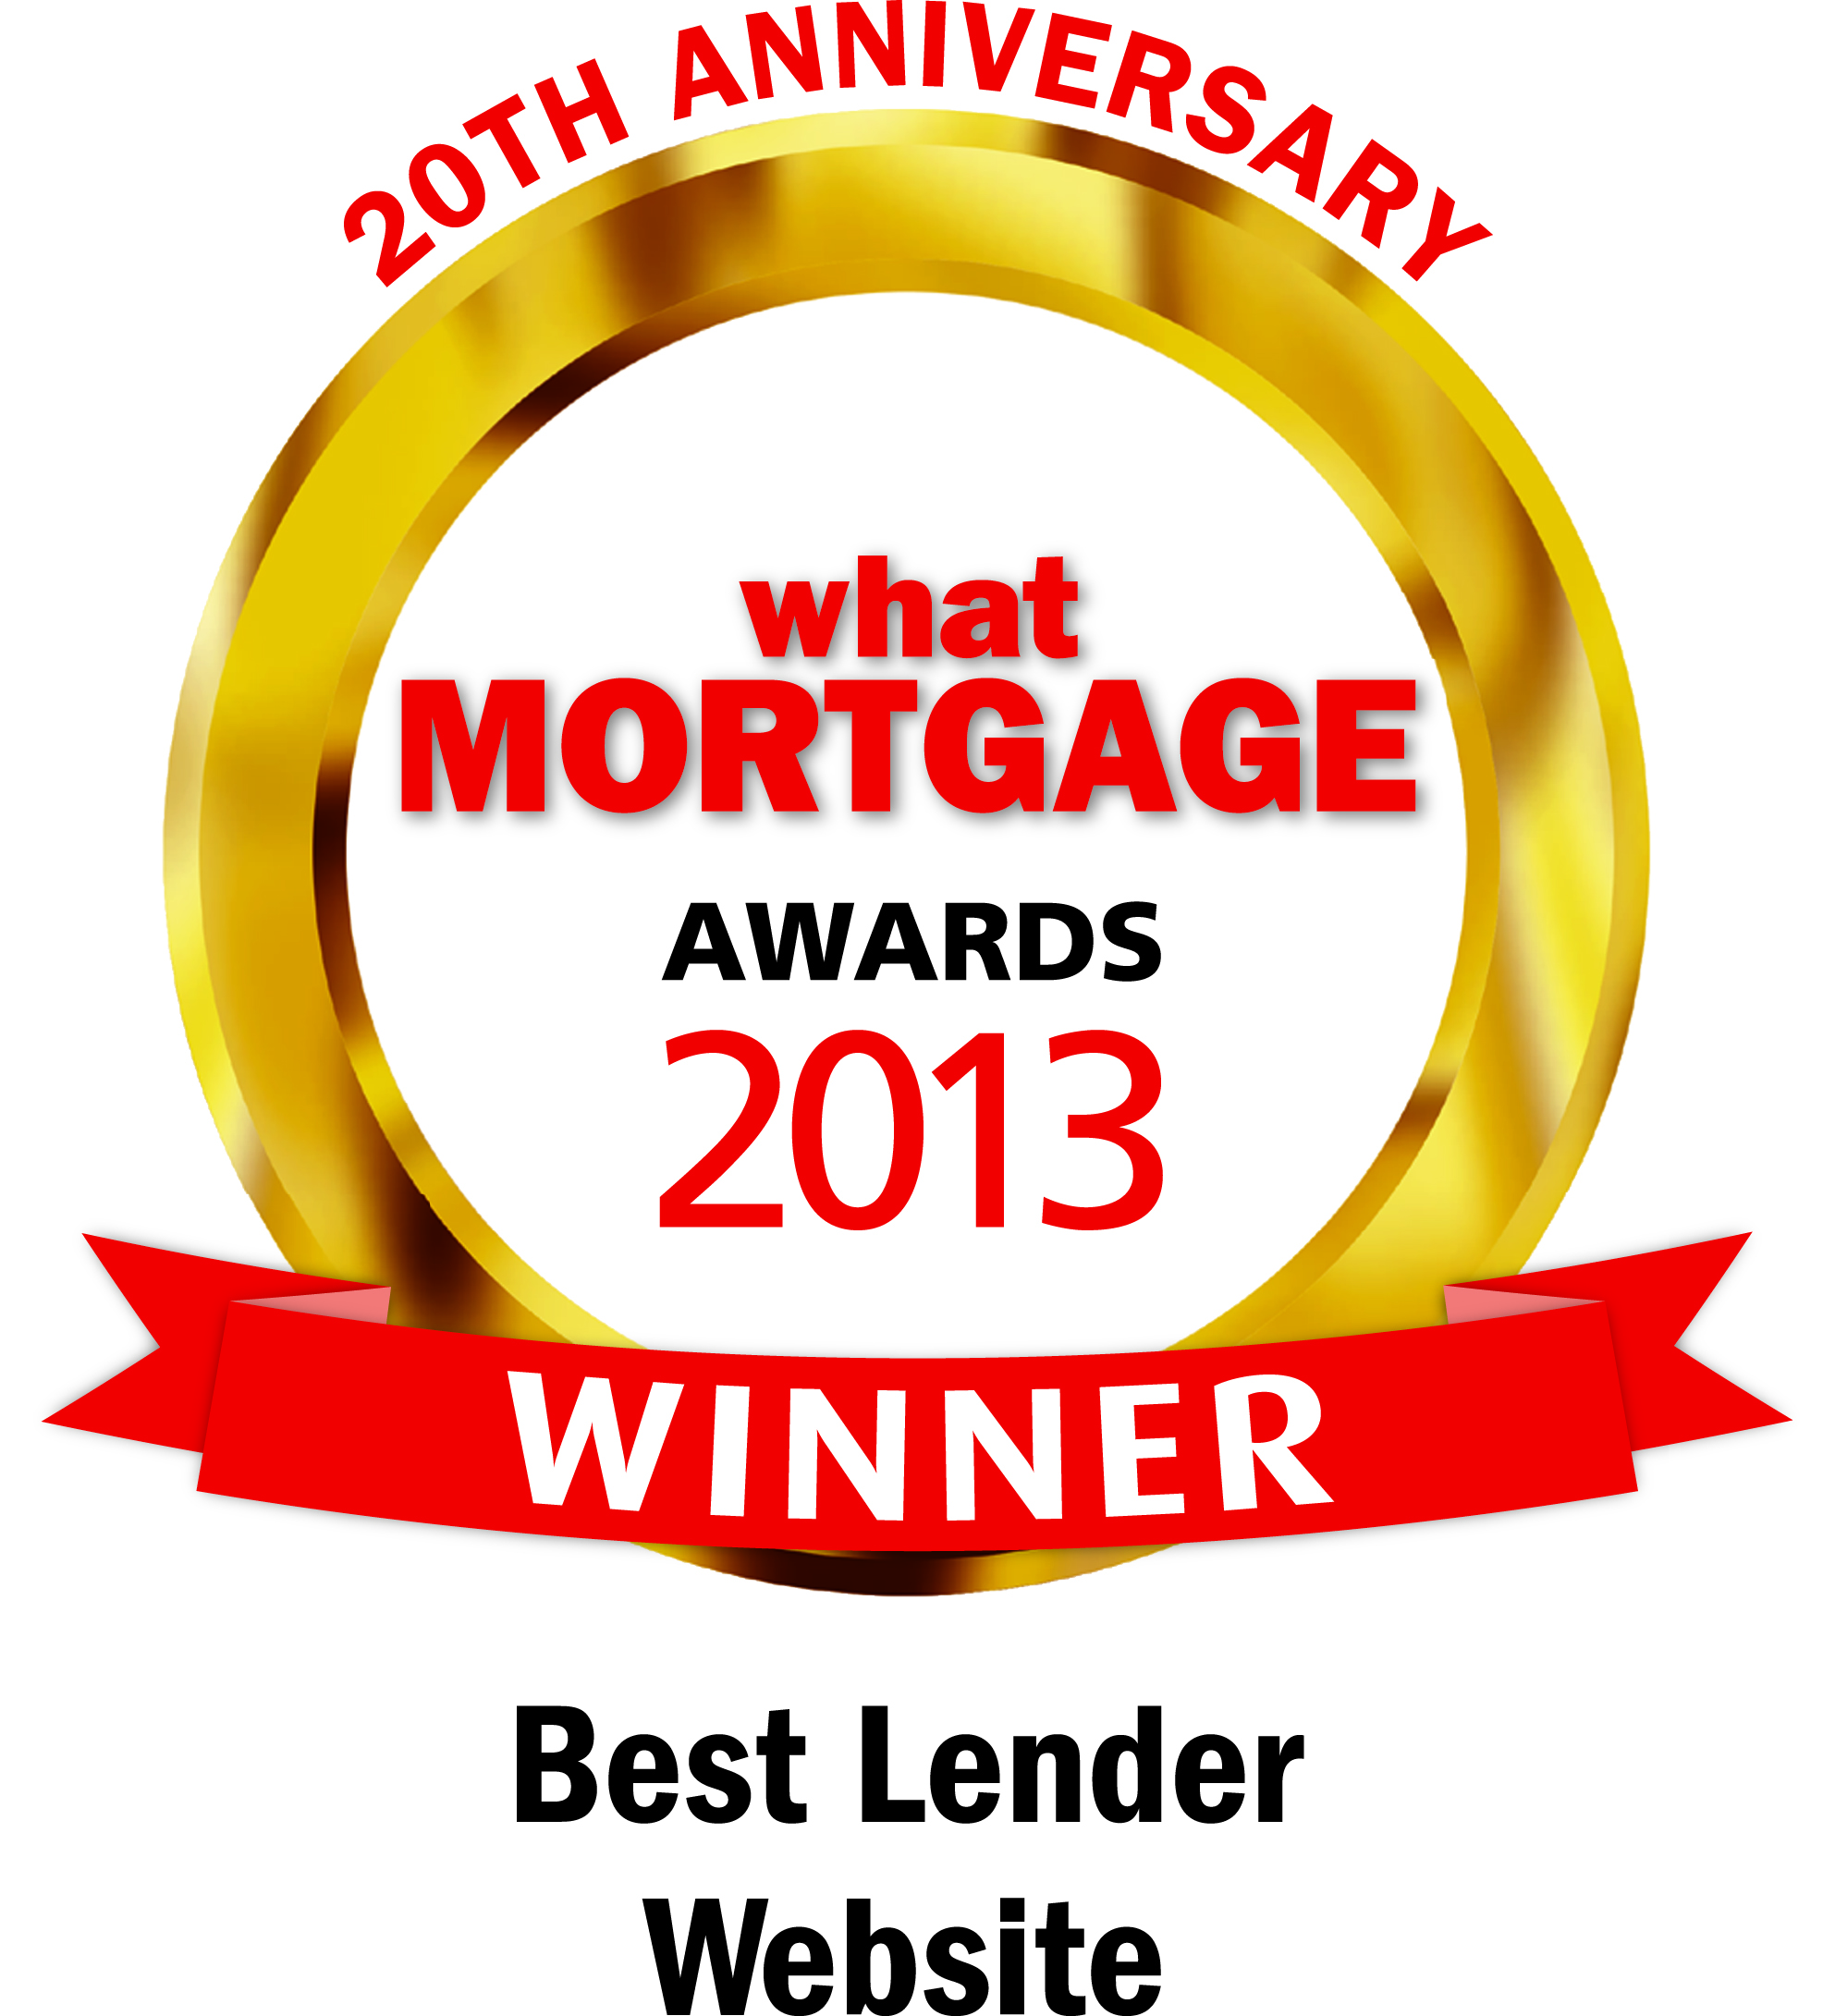 Best mortgage lender website award 2013